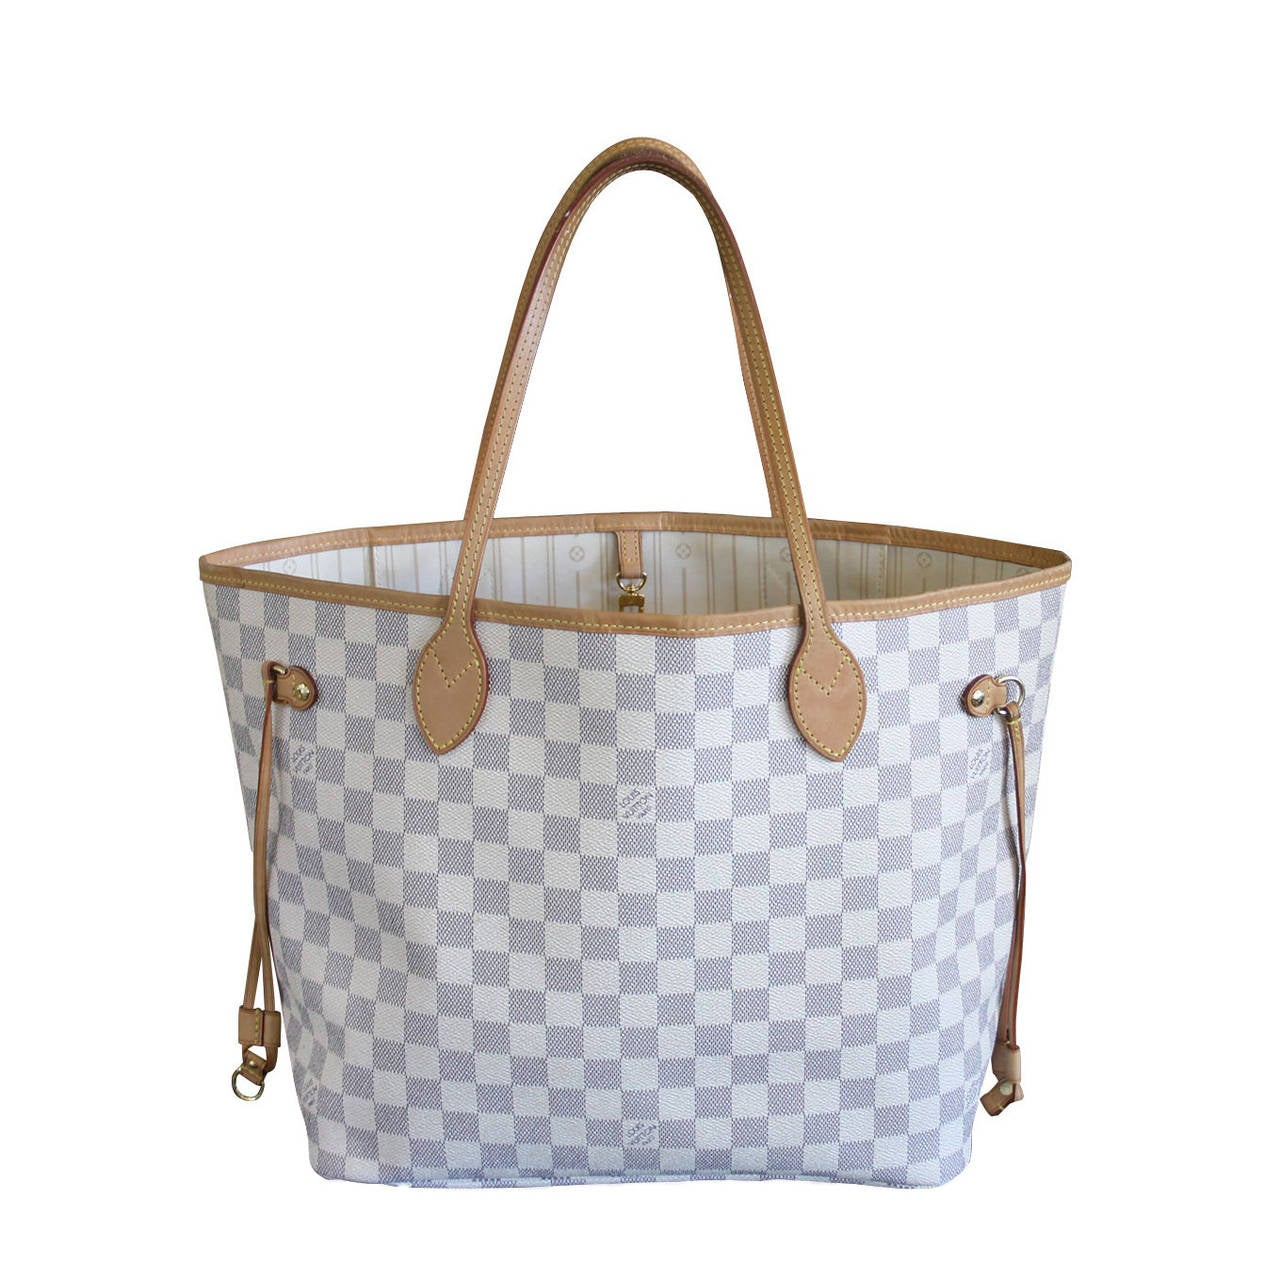 Louis Vuitton Neverfull MM Damier Azur Canvas Handbag Tote 1